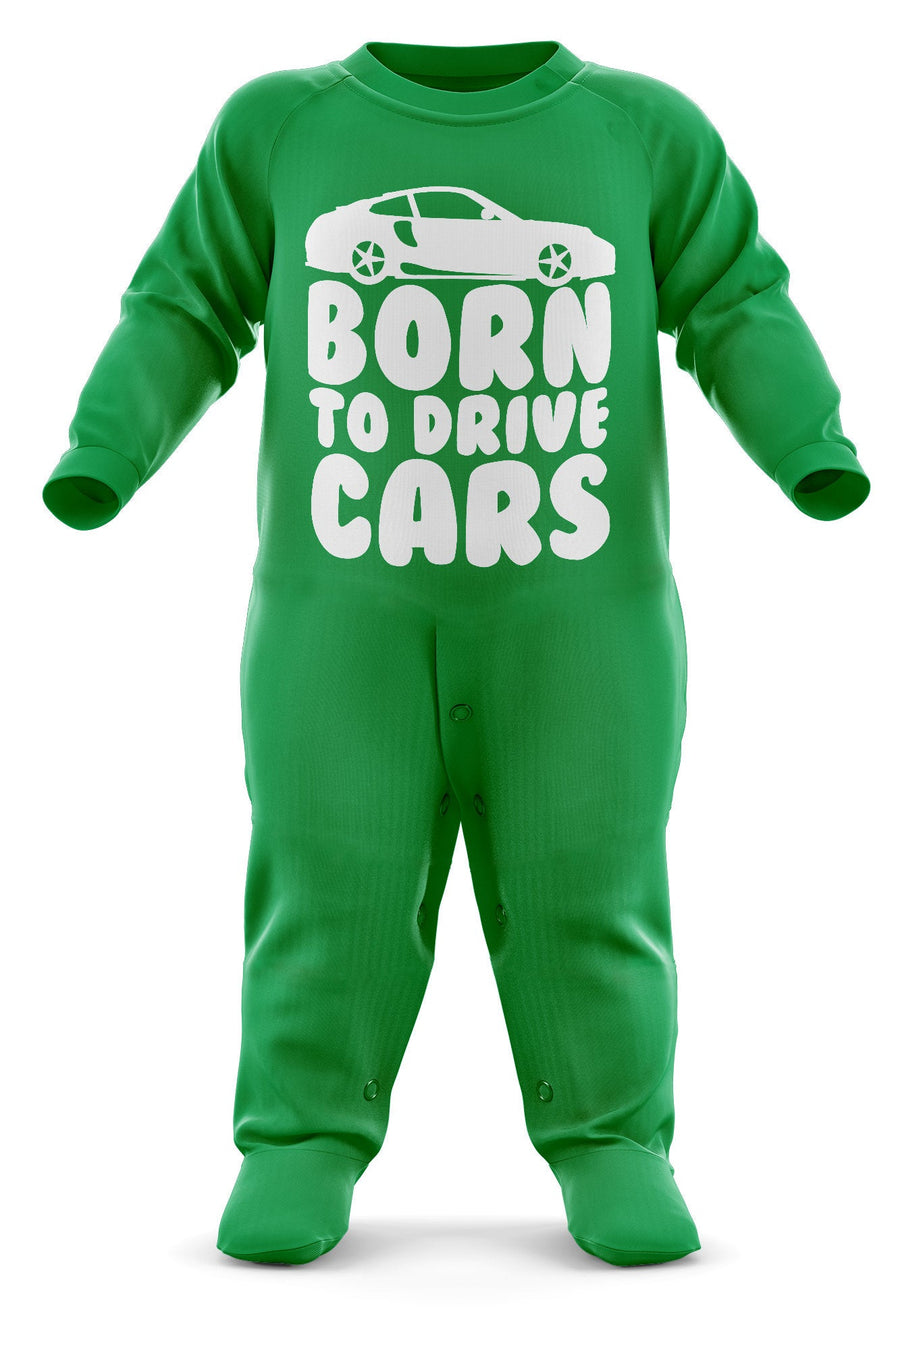 Born To Drive Cars Babygrow - Sports Car Baby Romper Suit - Babies Car Christmas Gift - Birthday Present - Newborn Romper